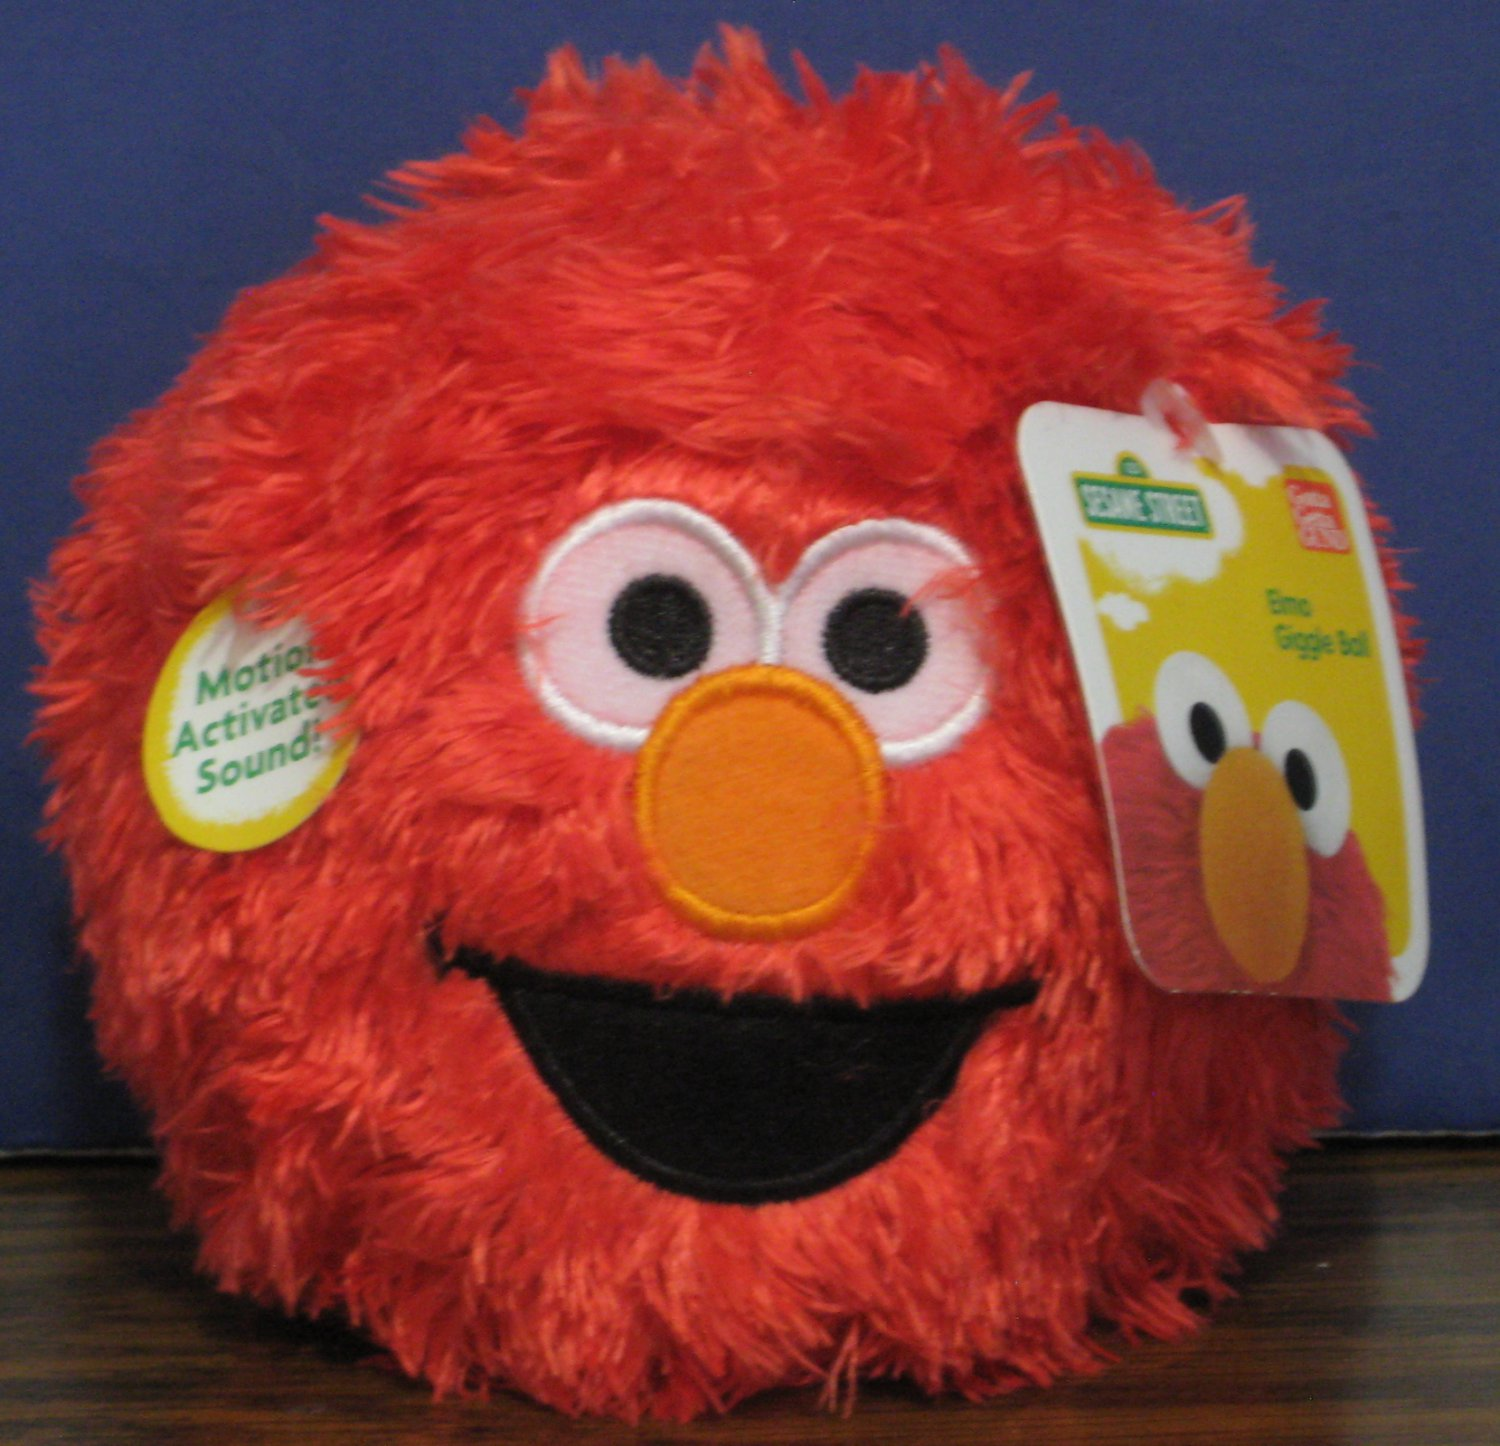 "Sesame Street Elmo Monster Plush Giggle Ball 2013 Gund - 12"" Round 4.5"" High"